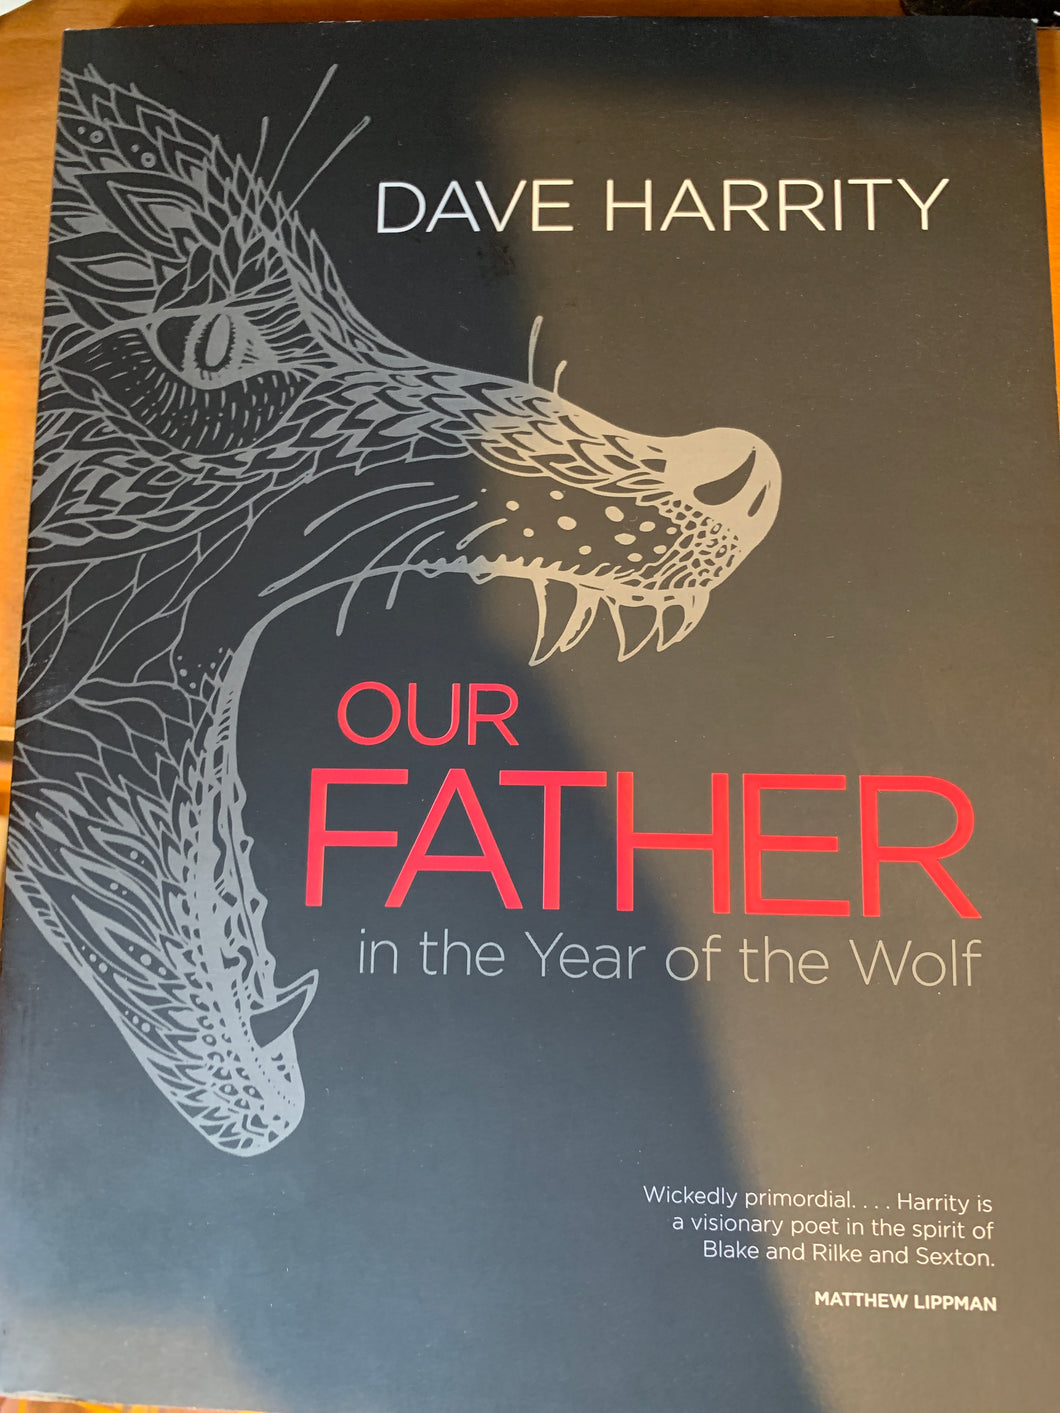 Our Father in the year of the wolf